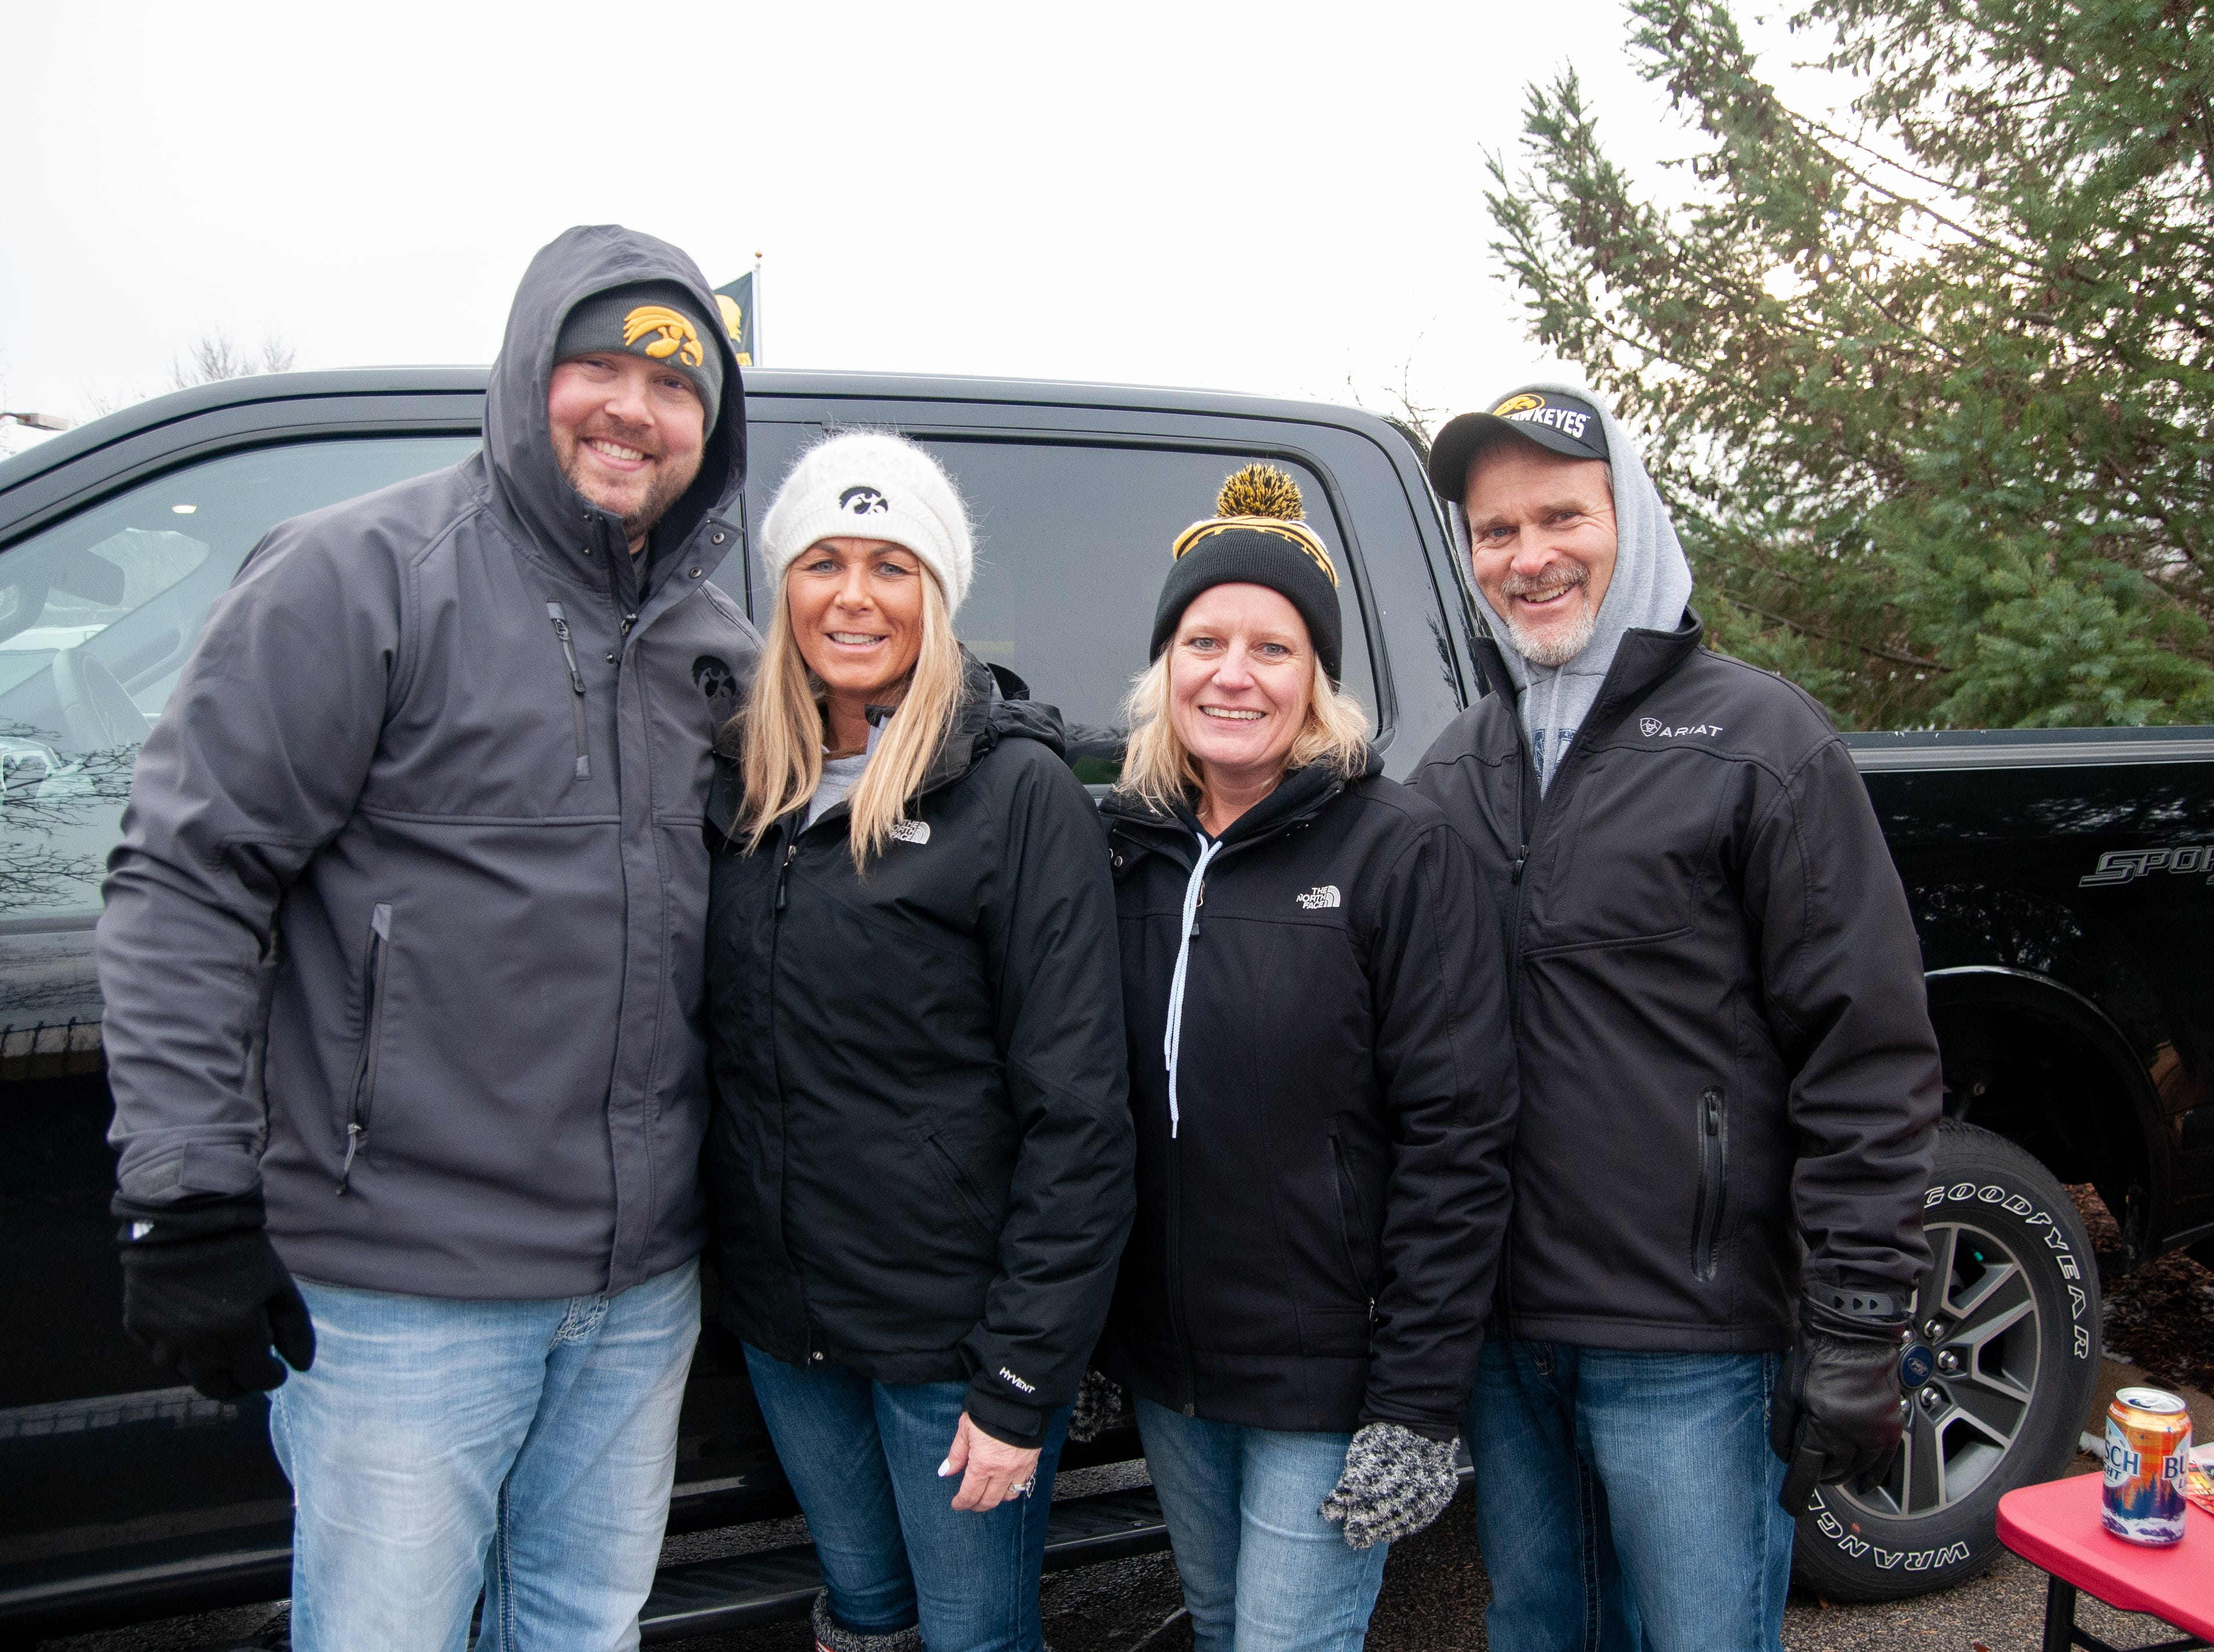 Andy, left, and Tara Quirk, with Julie and Russ Tucker, of Grand Junction, Friday, Nov. 23, 2018, while tailgating before the Iowa game against Nebraska in Iowa City.